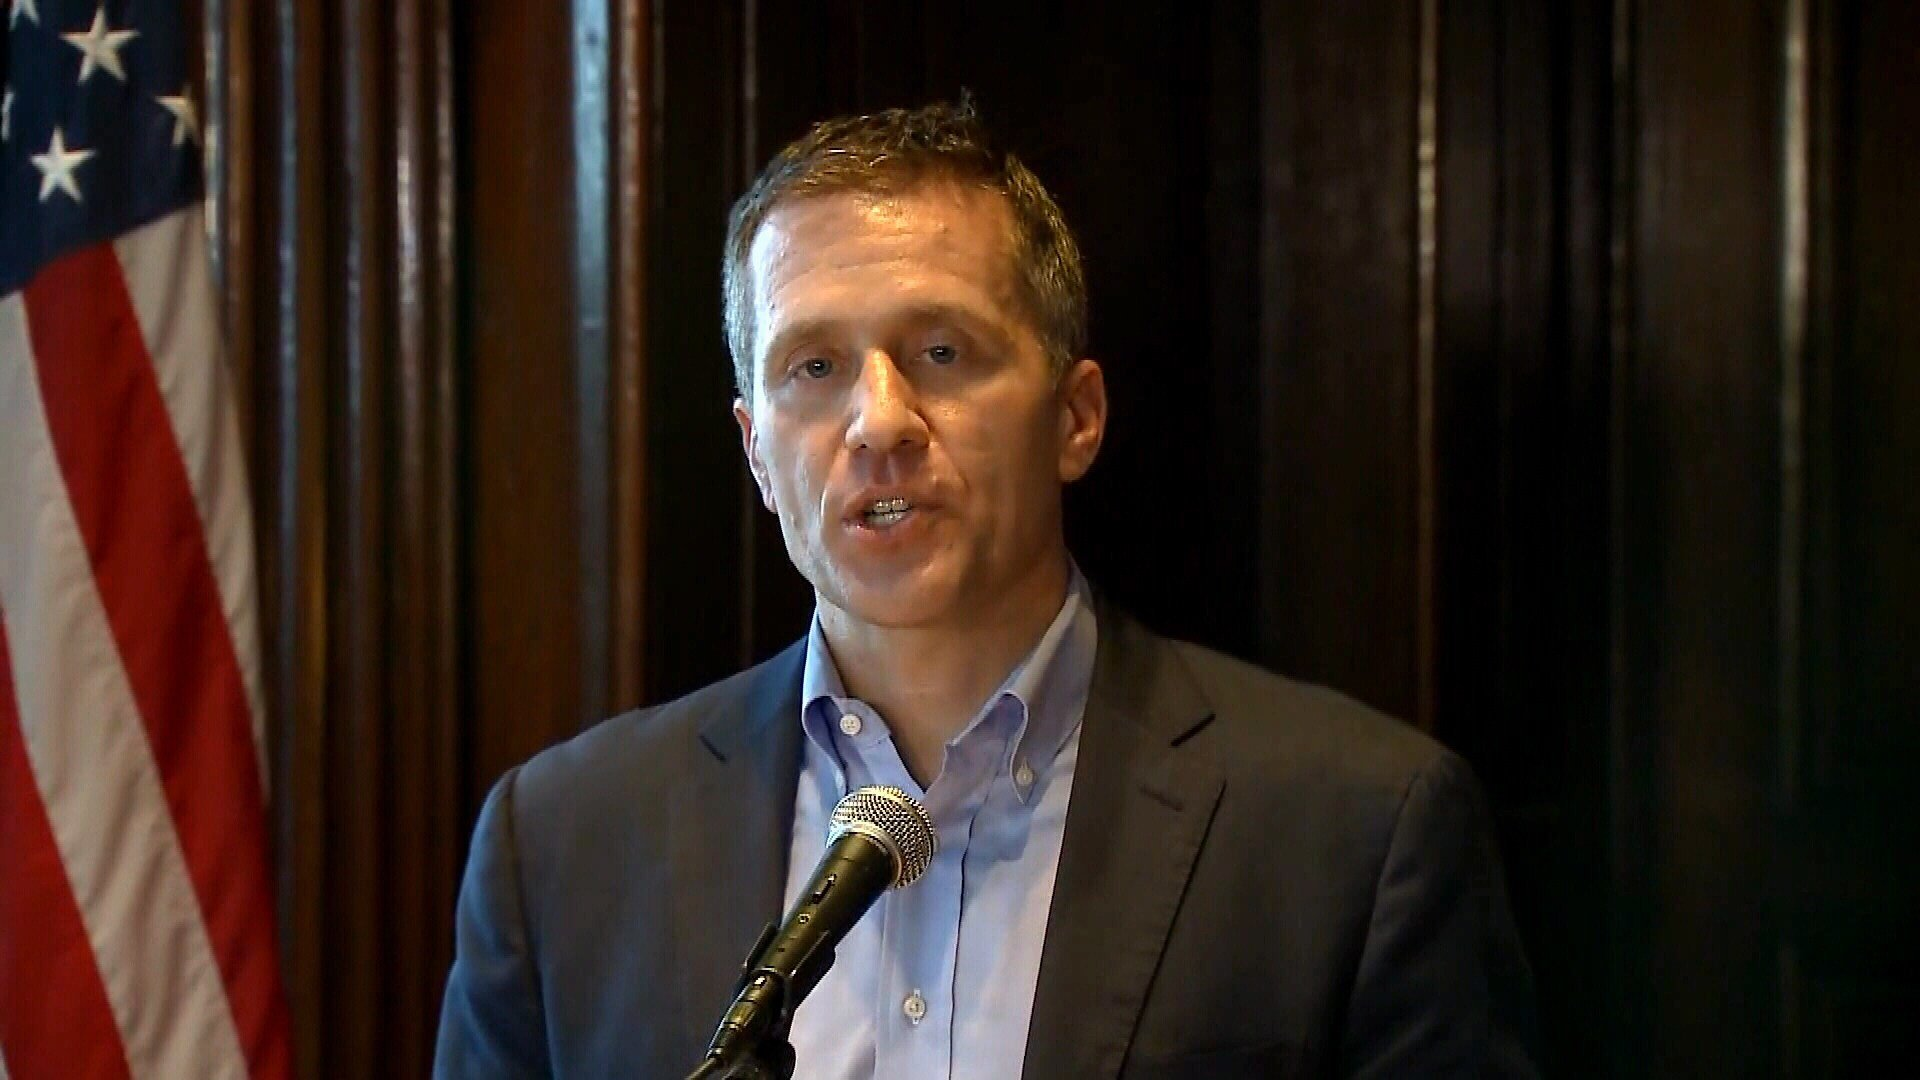 Committee investigating Gov. Greitens releases addendum to report